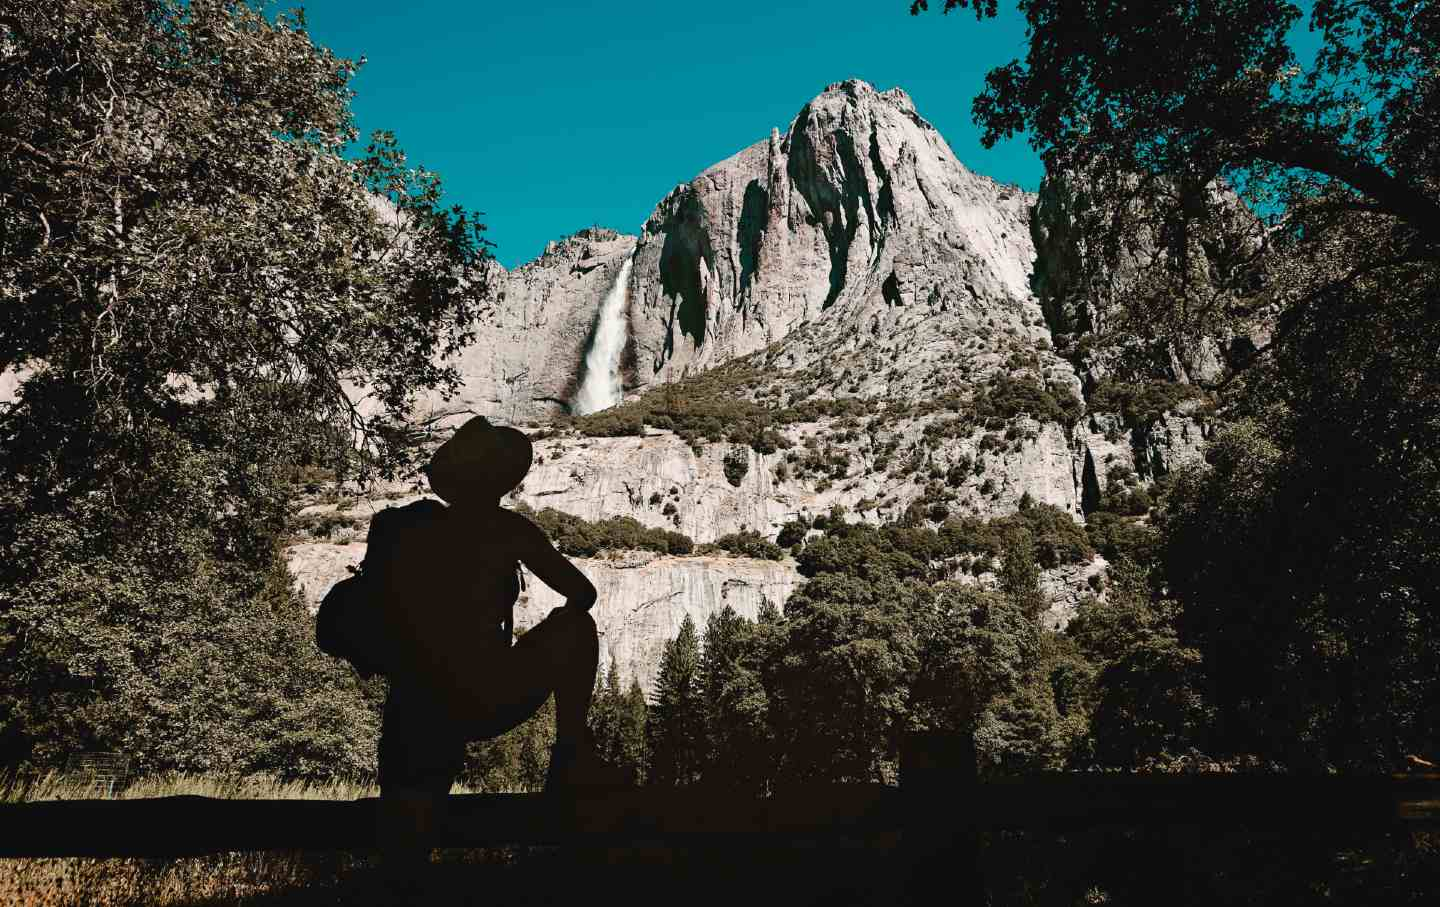 A hiker in Yosemite National Park